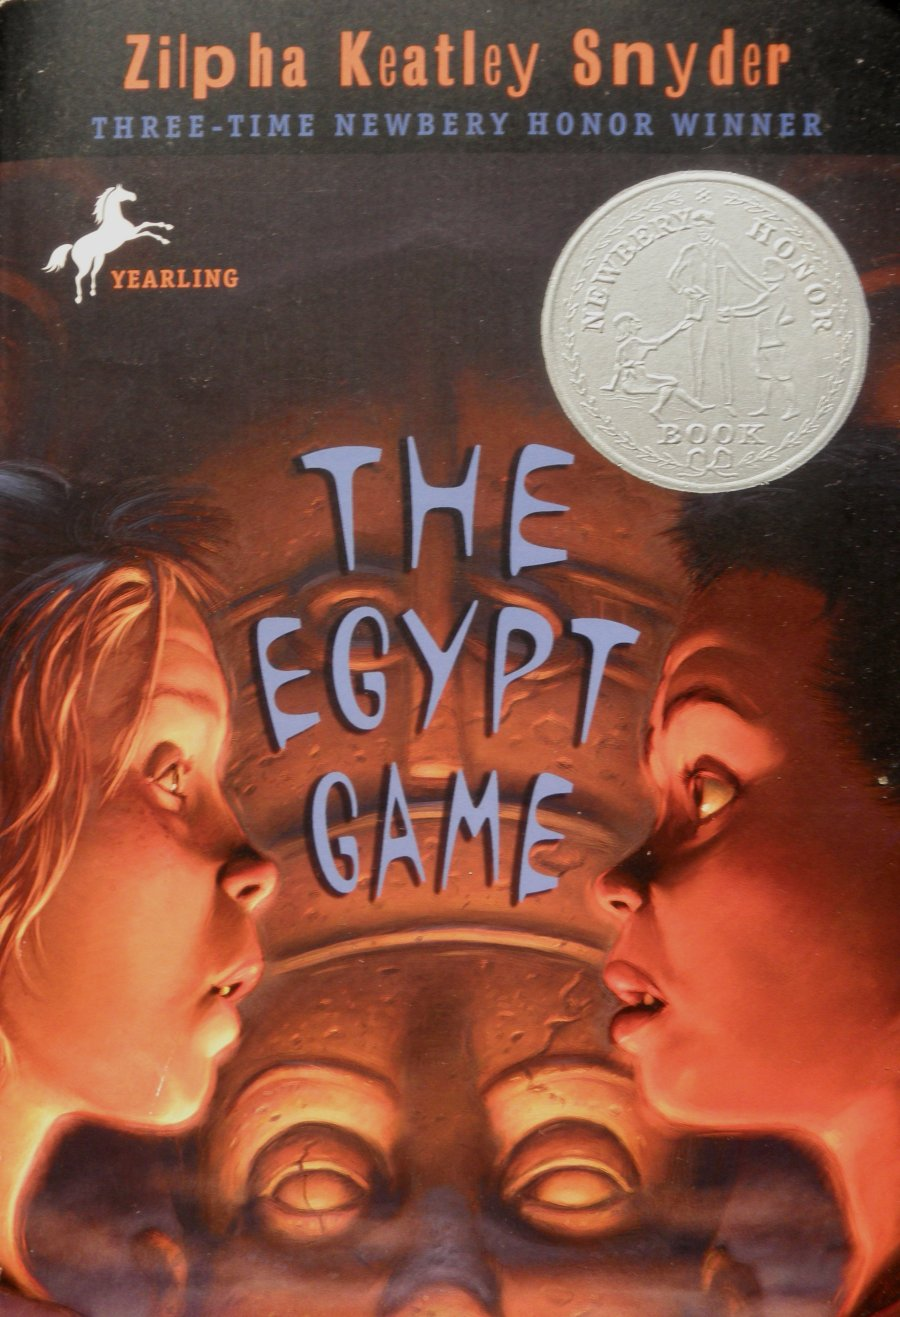 Cover of The Egypt Game, by Zilpha Keatley Snyder.  Two girls stare at each other with wondrous expressions, their faces in profile on opposite sides of the cover.   Between them, you see a statue of an Egyptian queen or pharaoh, their face lit up from below.  The girls' faces are also lit up.  Above them all is darkness.